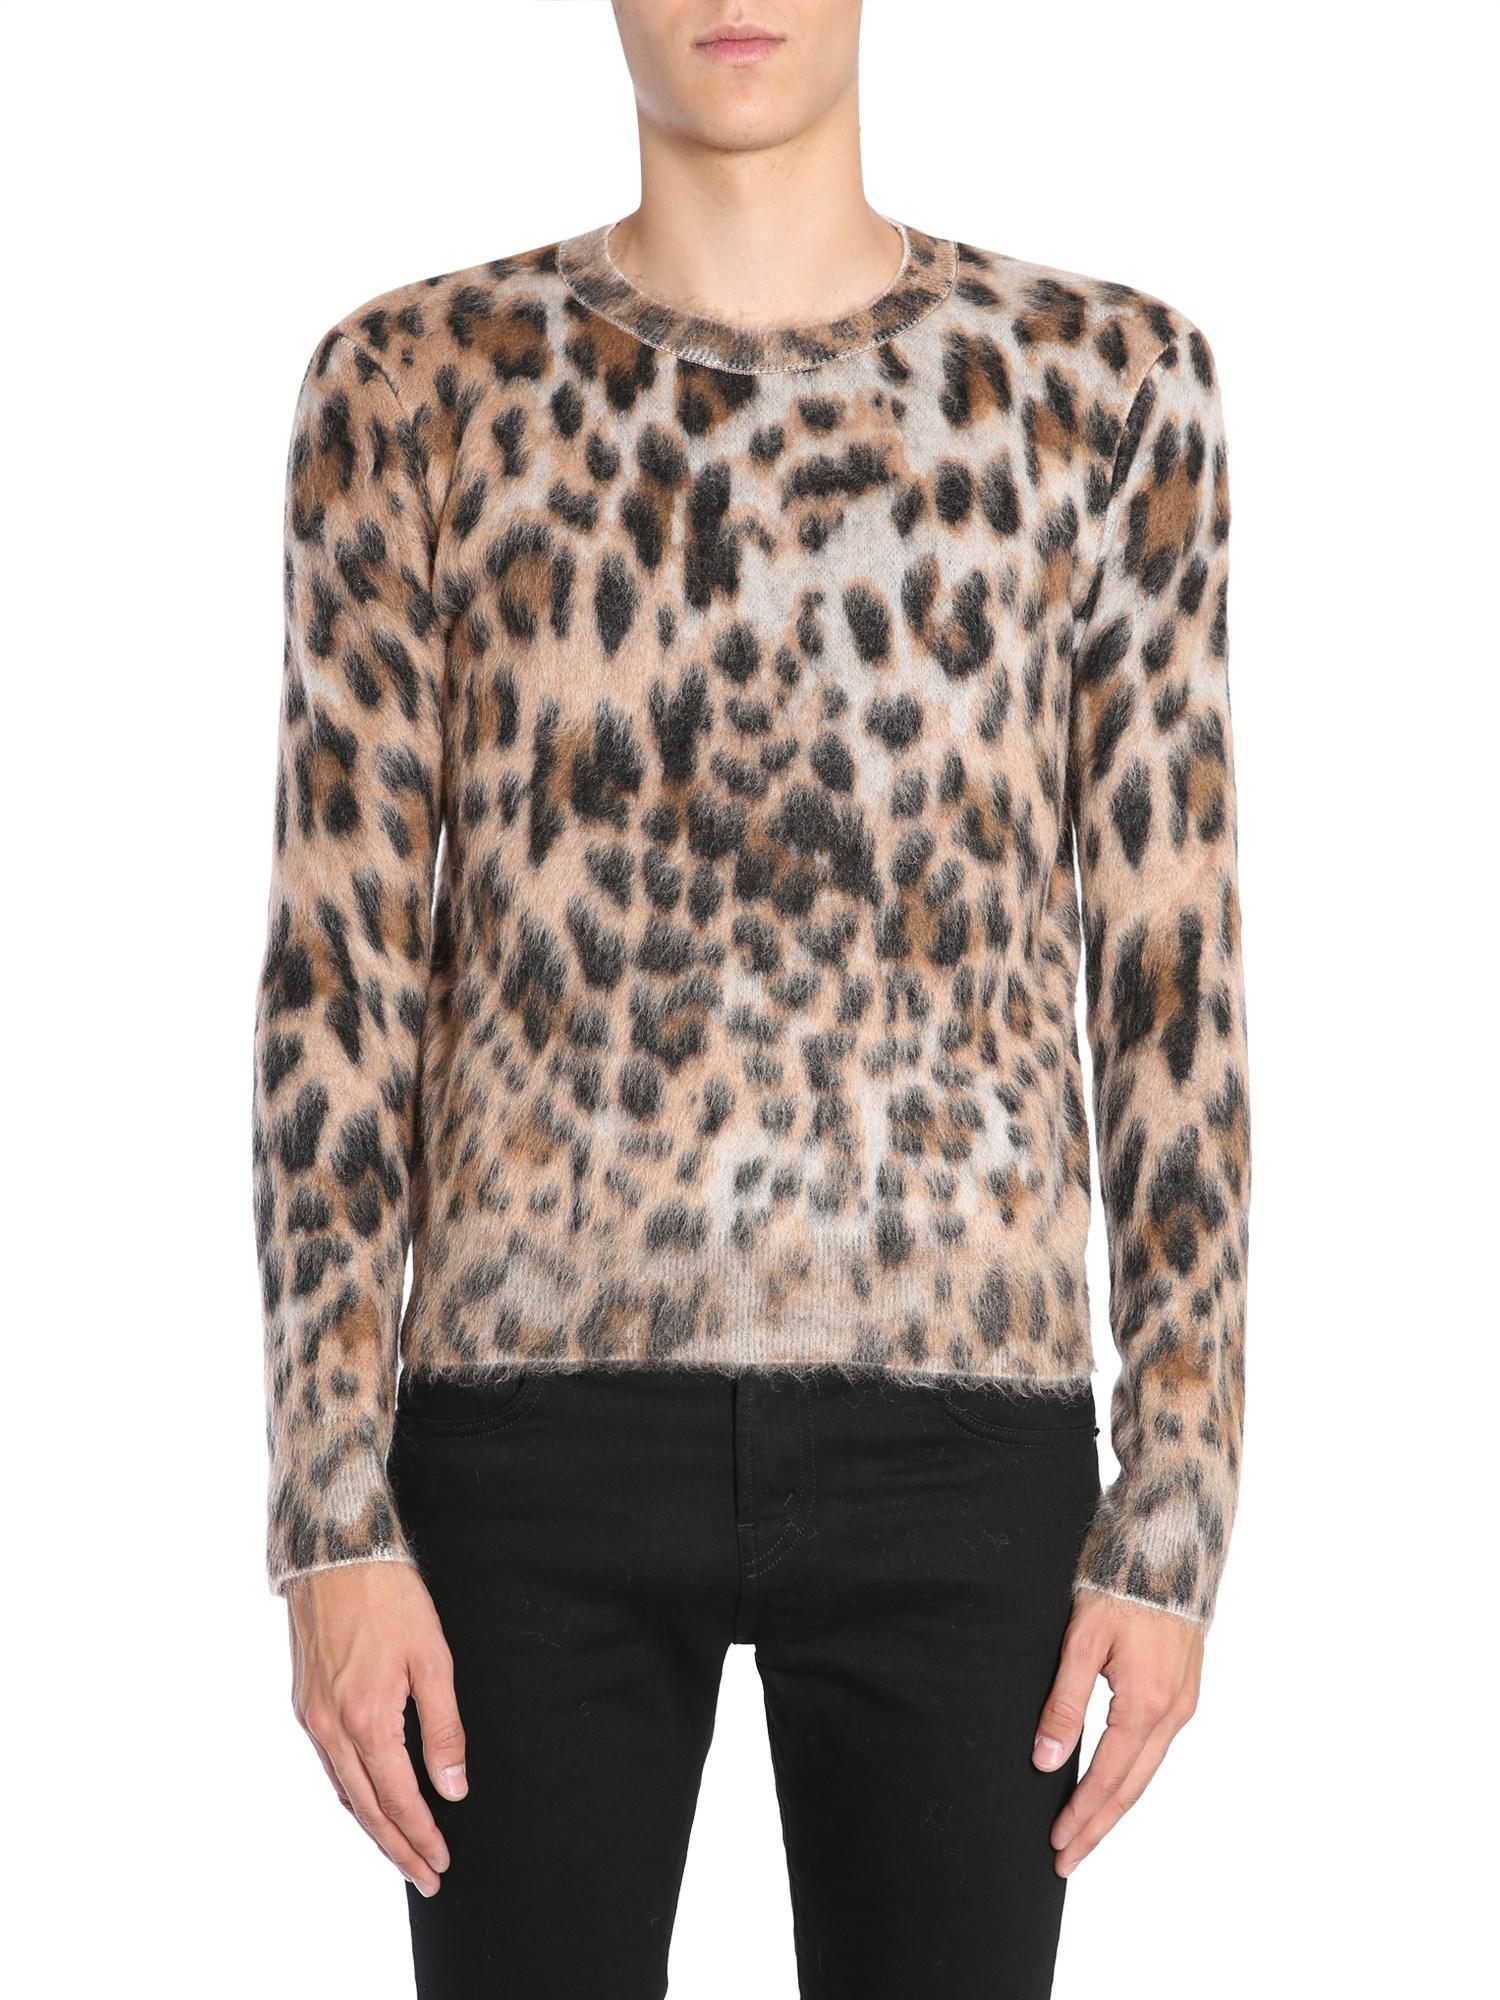 d3ef59aa6f0 Lyst - Saint Laurent Textured Leopard Print Sweater in Brown for Men - Save  55%